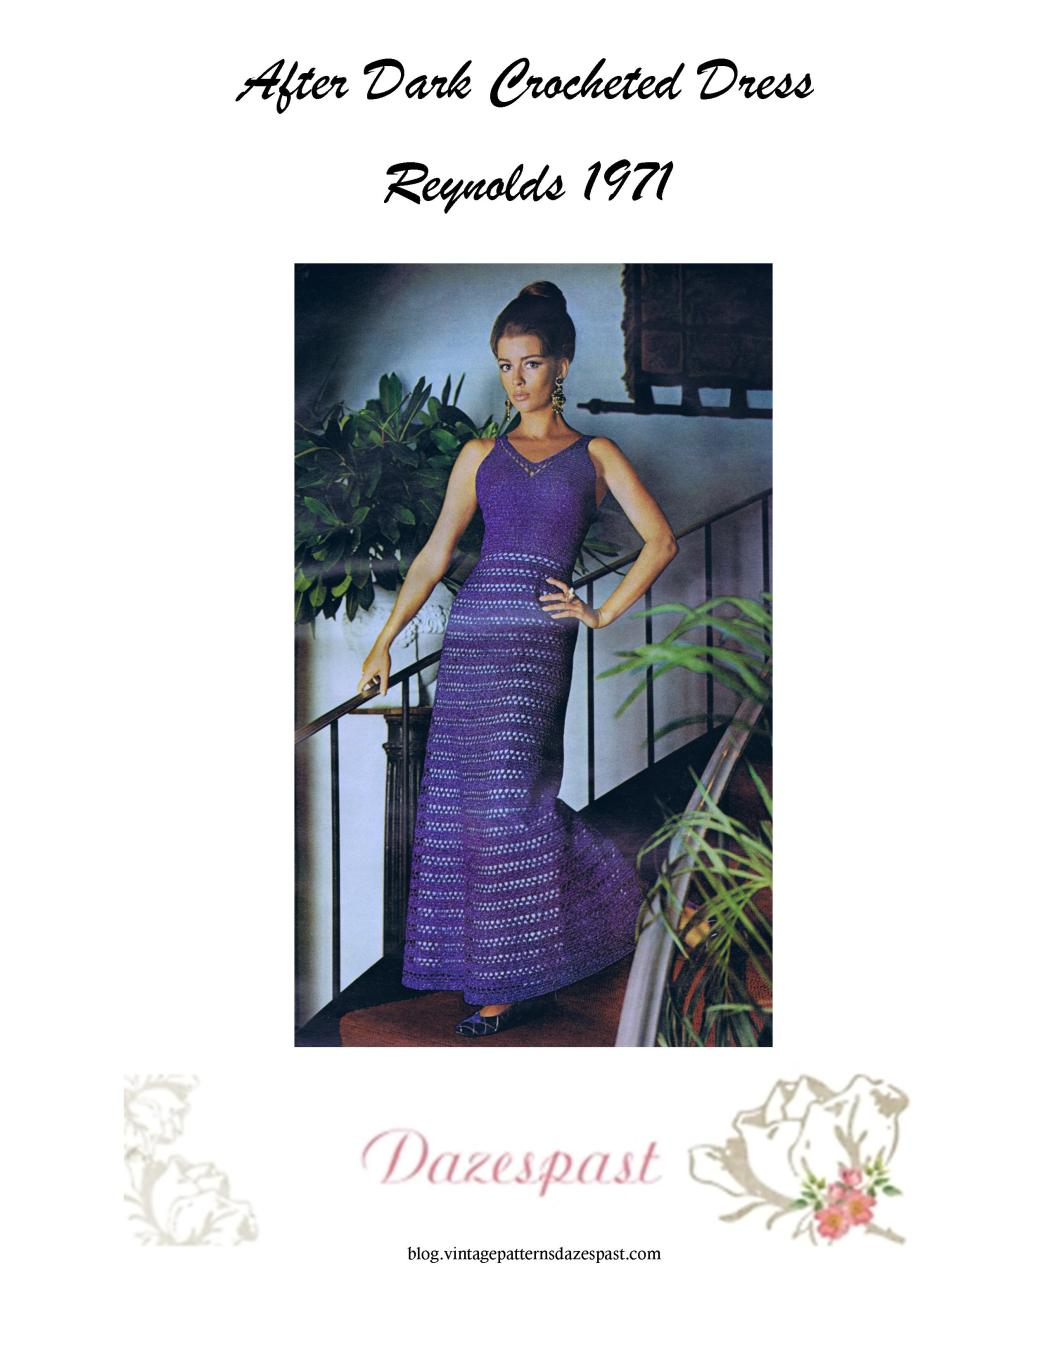 Crocheted Dress pattern